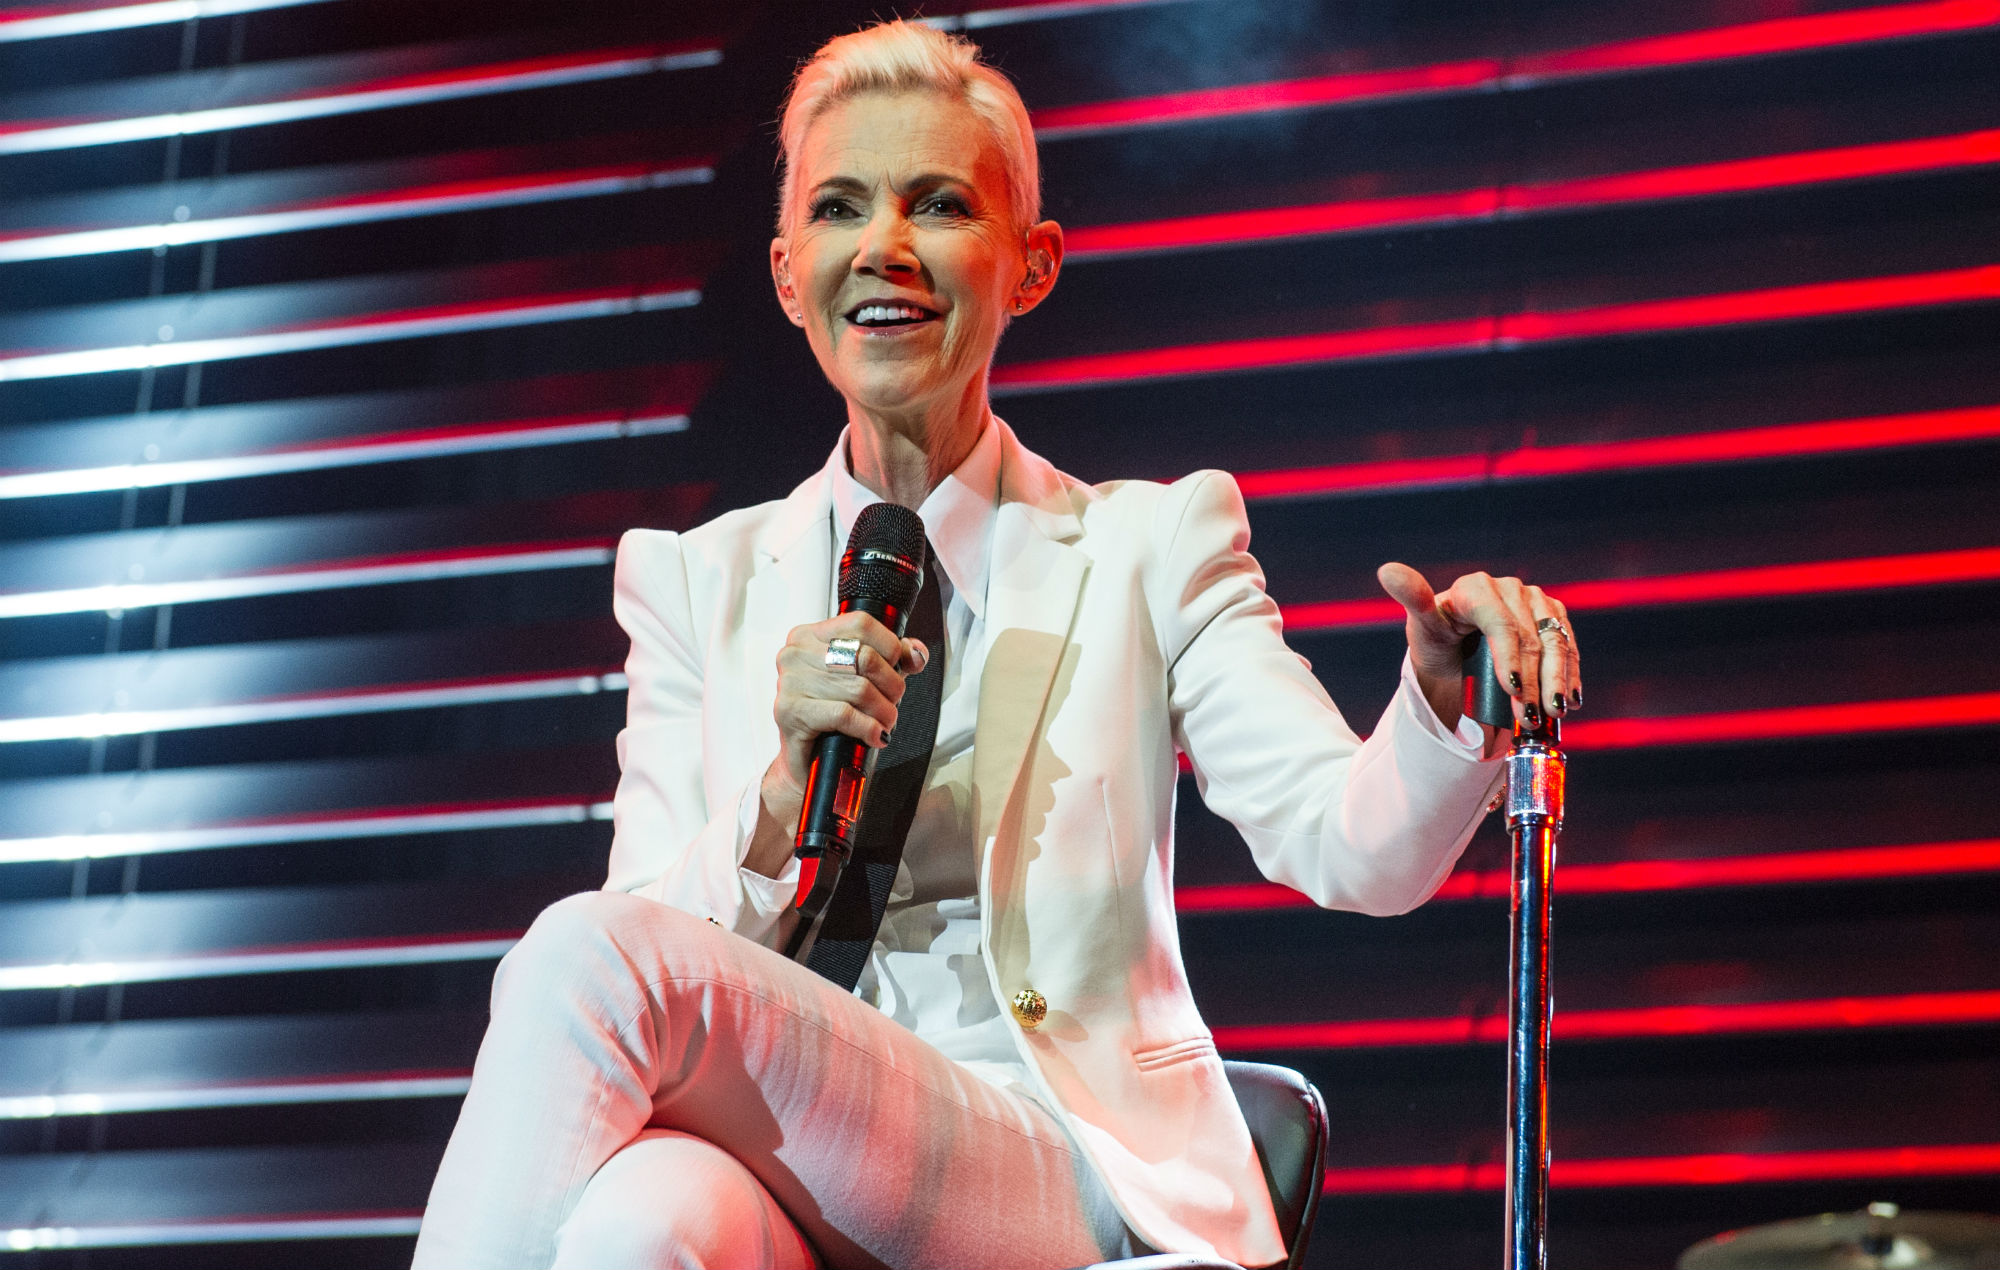 Roxette singer Marie Fredriksson has died aged 61